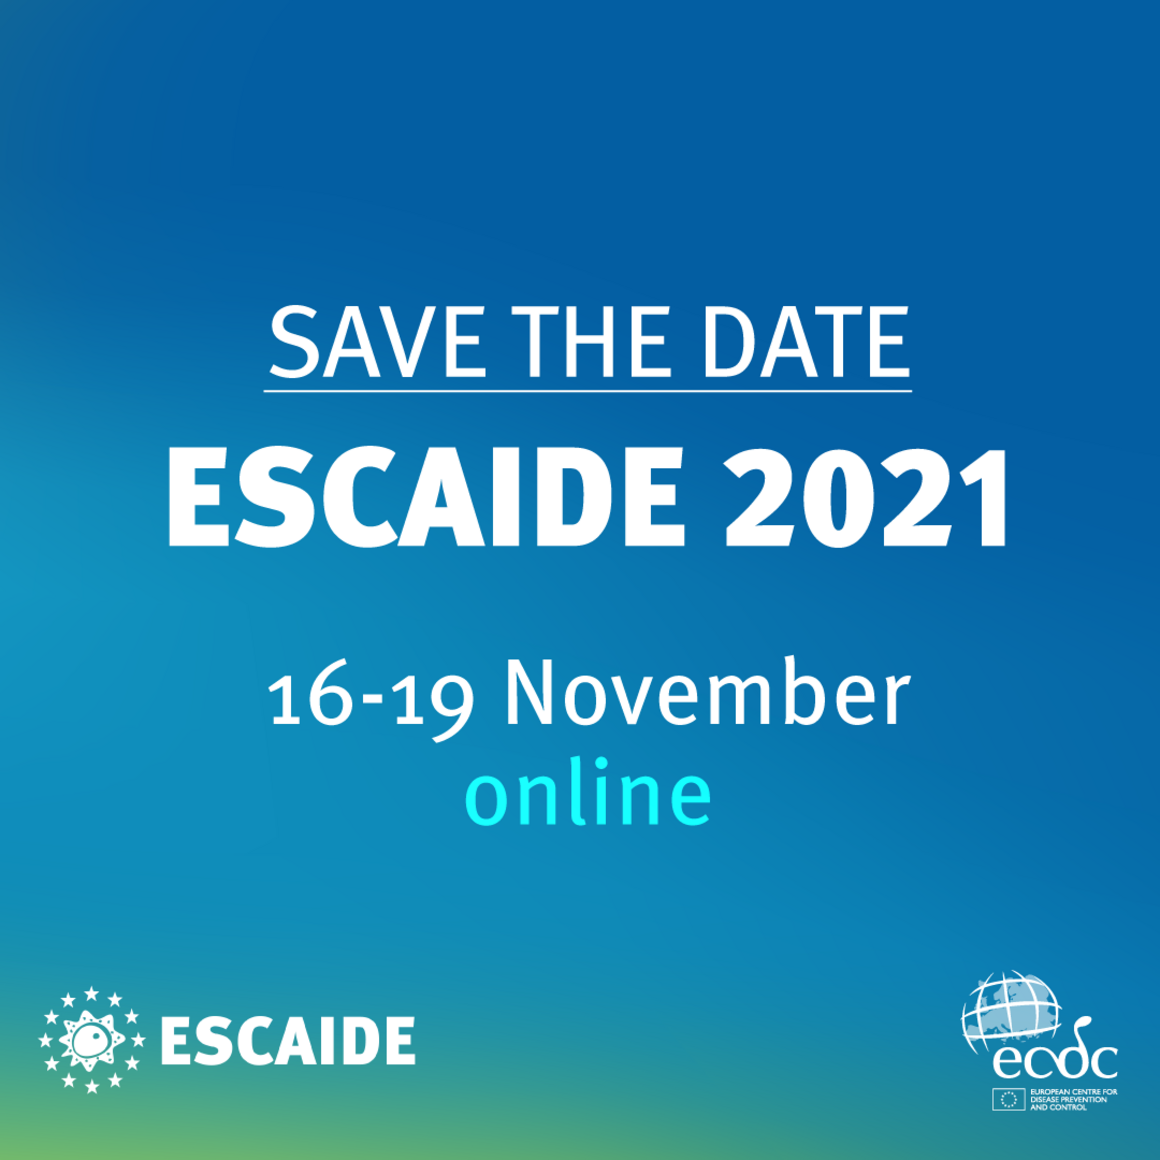 ESCAIDE 2021 Save the date